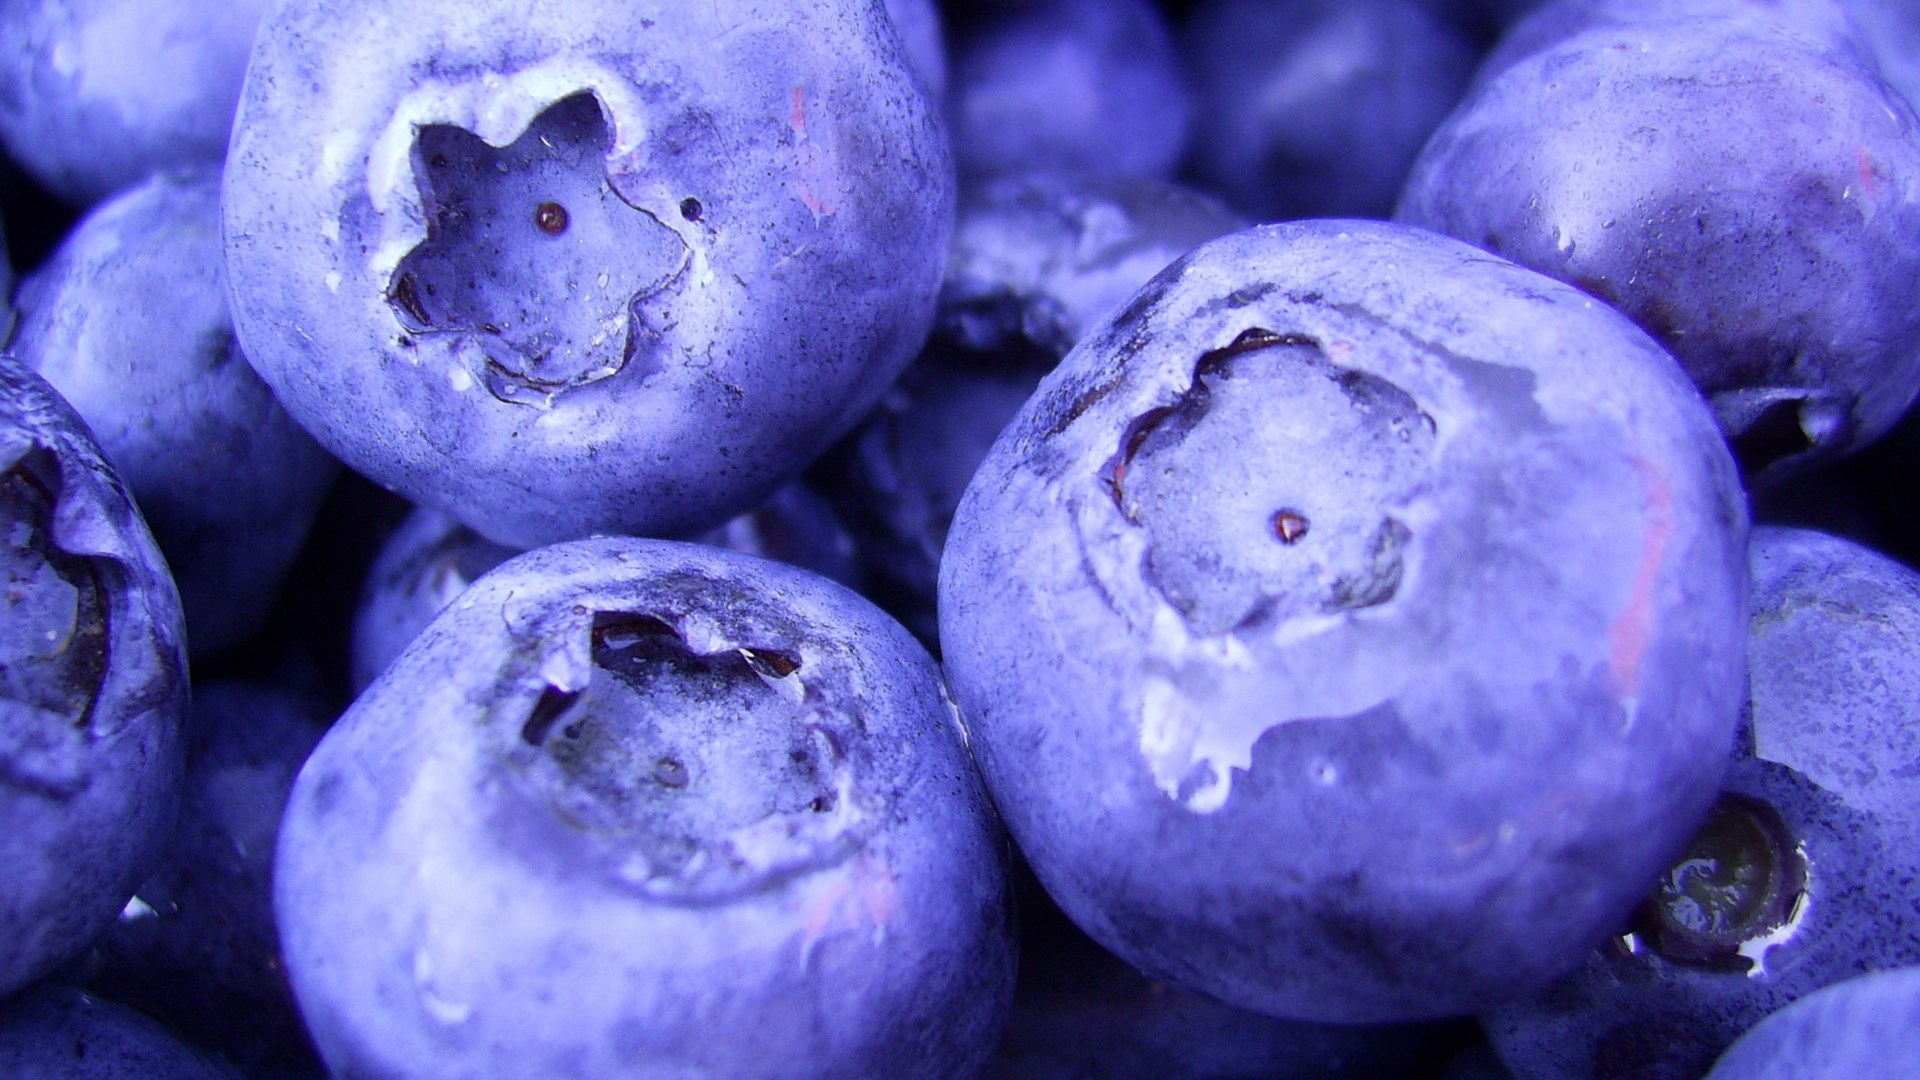 1920x1080-free-screensaver-for-blueberry-wallpaper-wpc580762